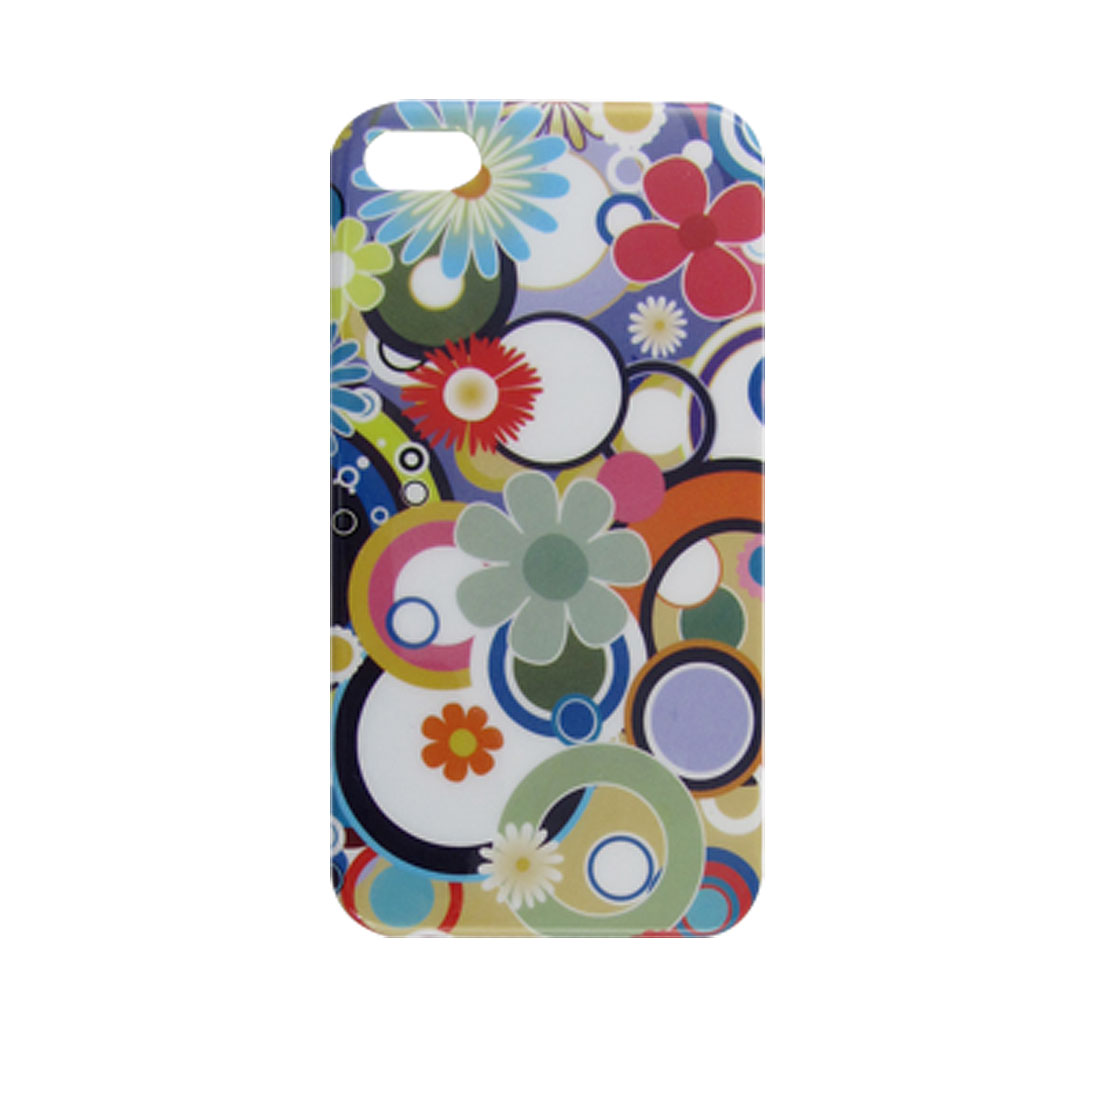 IMD Retro Circle Hard Plastic Back Case for iPhone 4 4G 4S